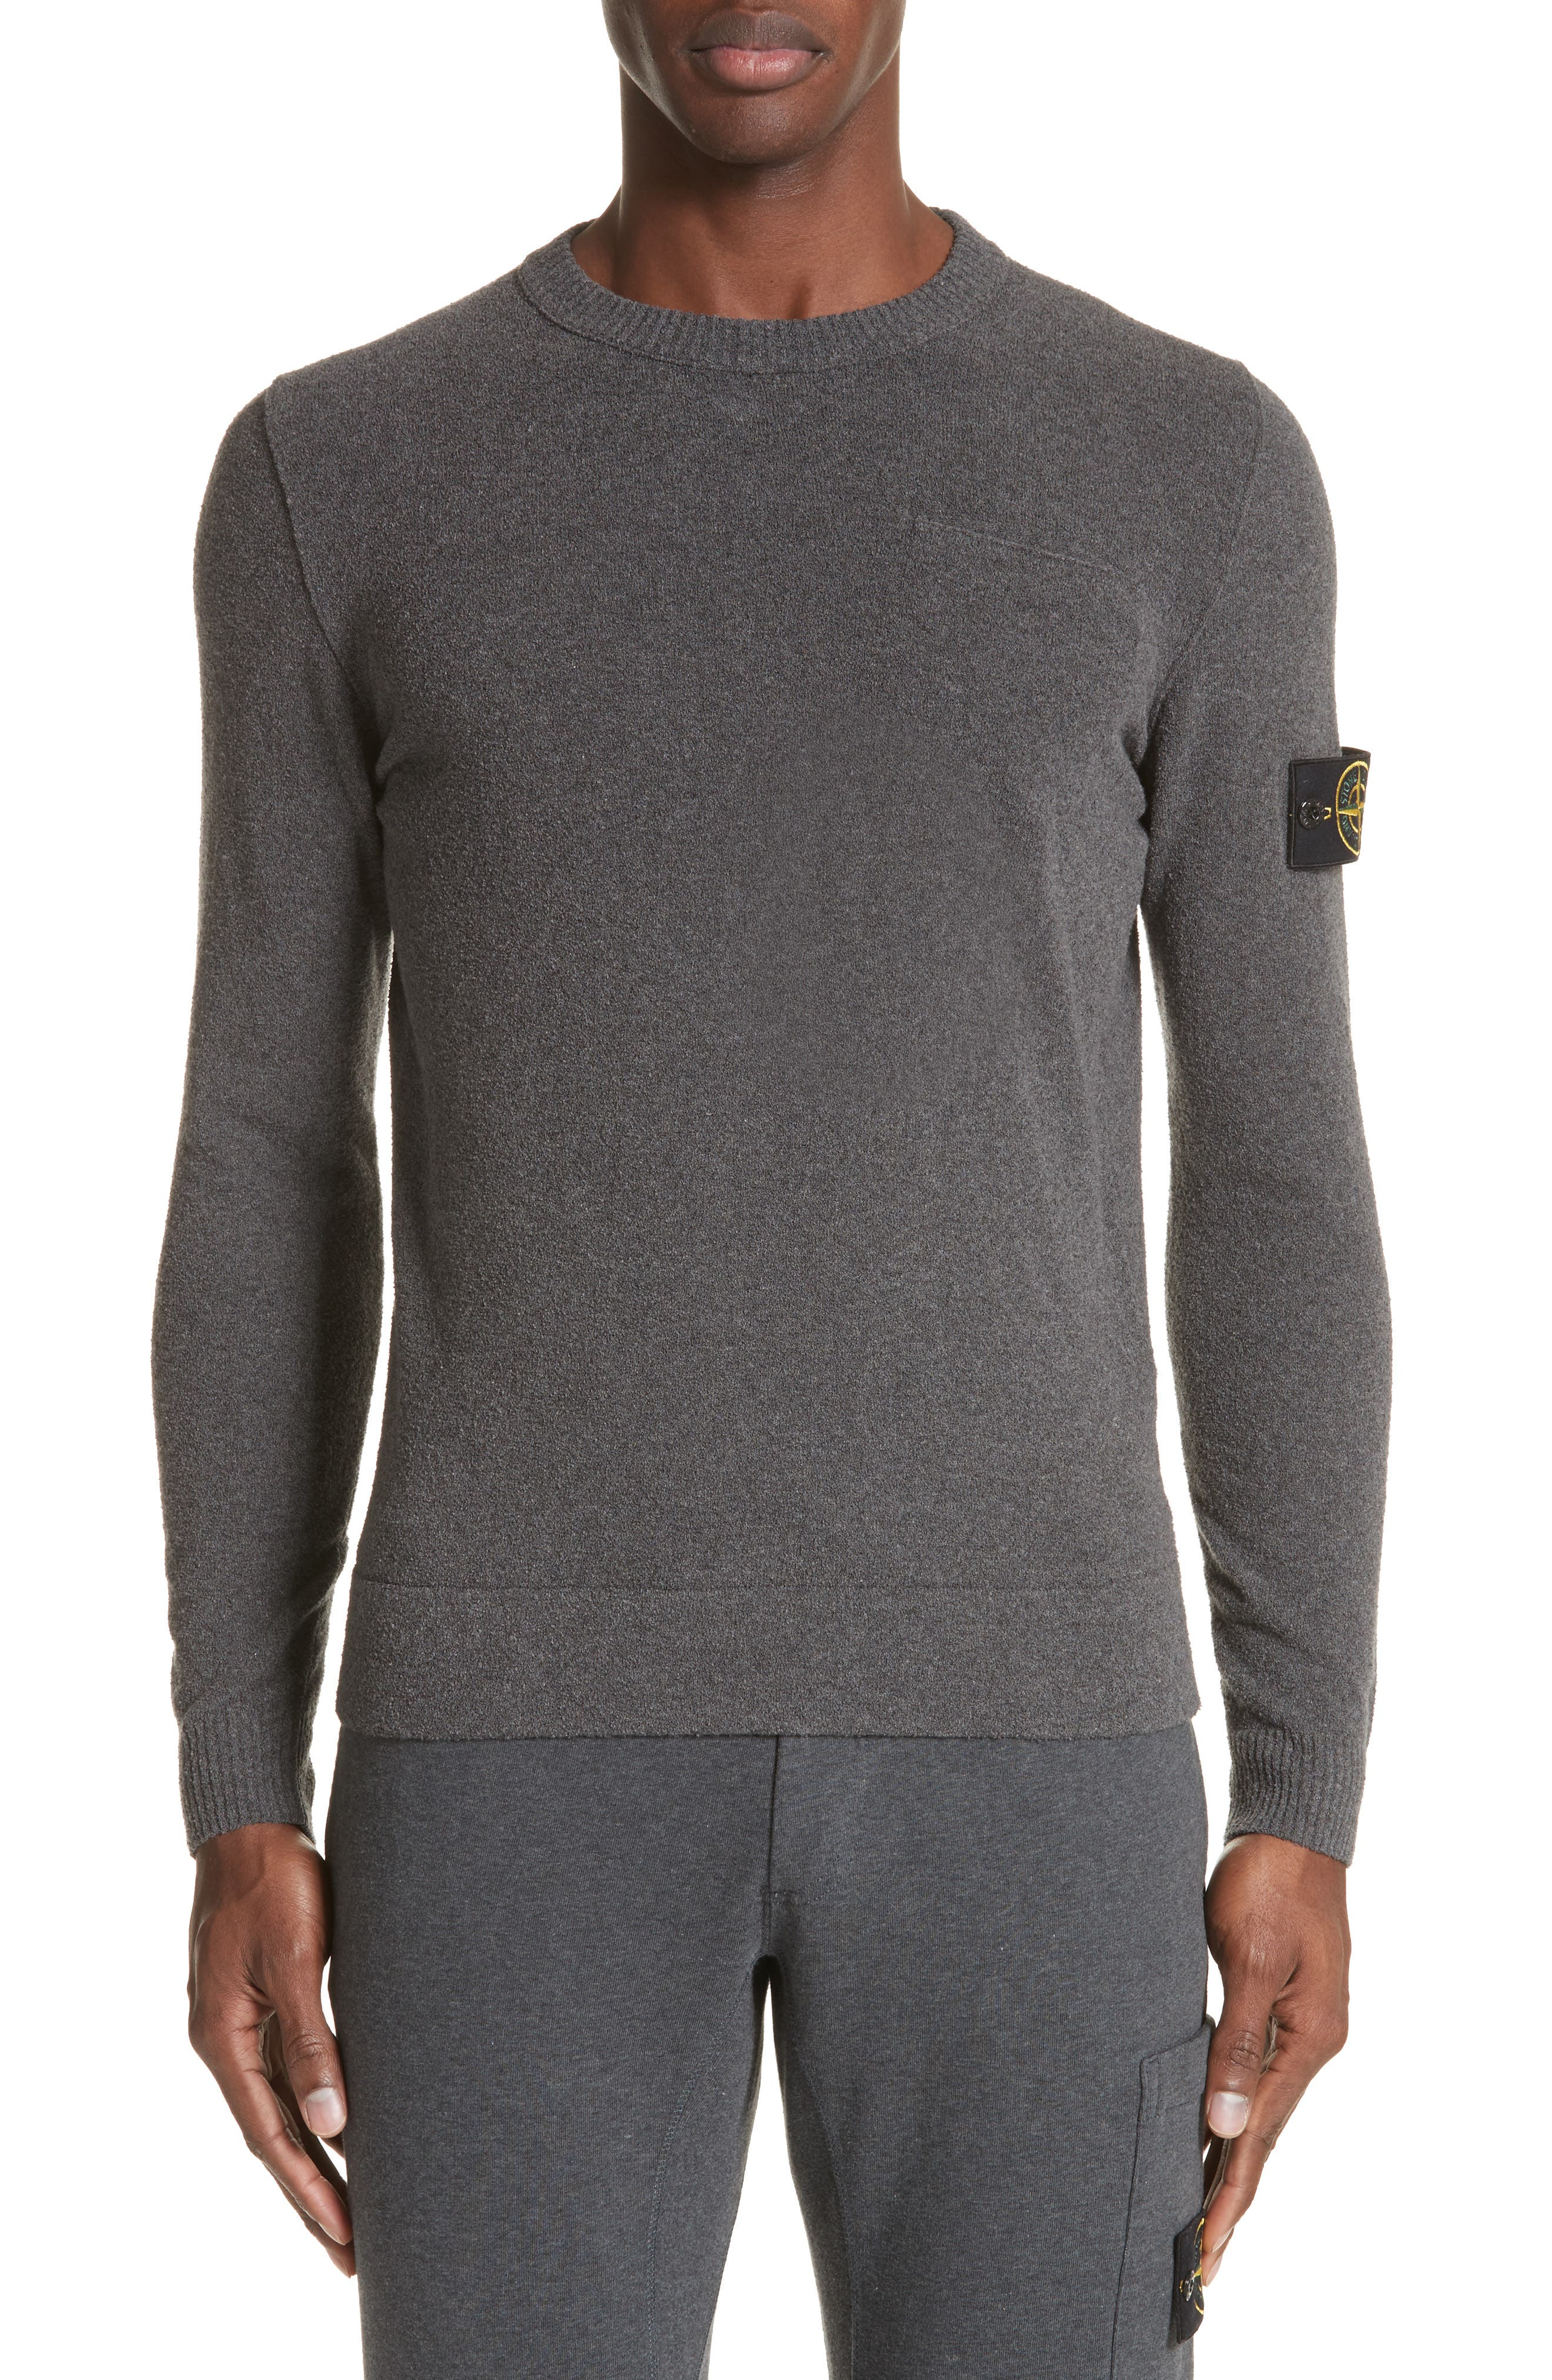 Terry Knit Crewneck Sweatshirt,                         Main,                         color, 020